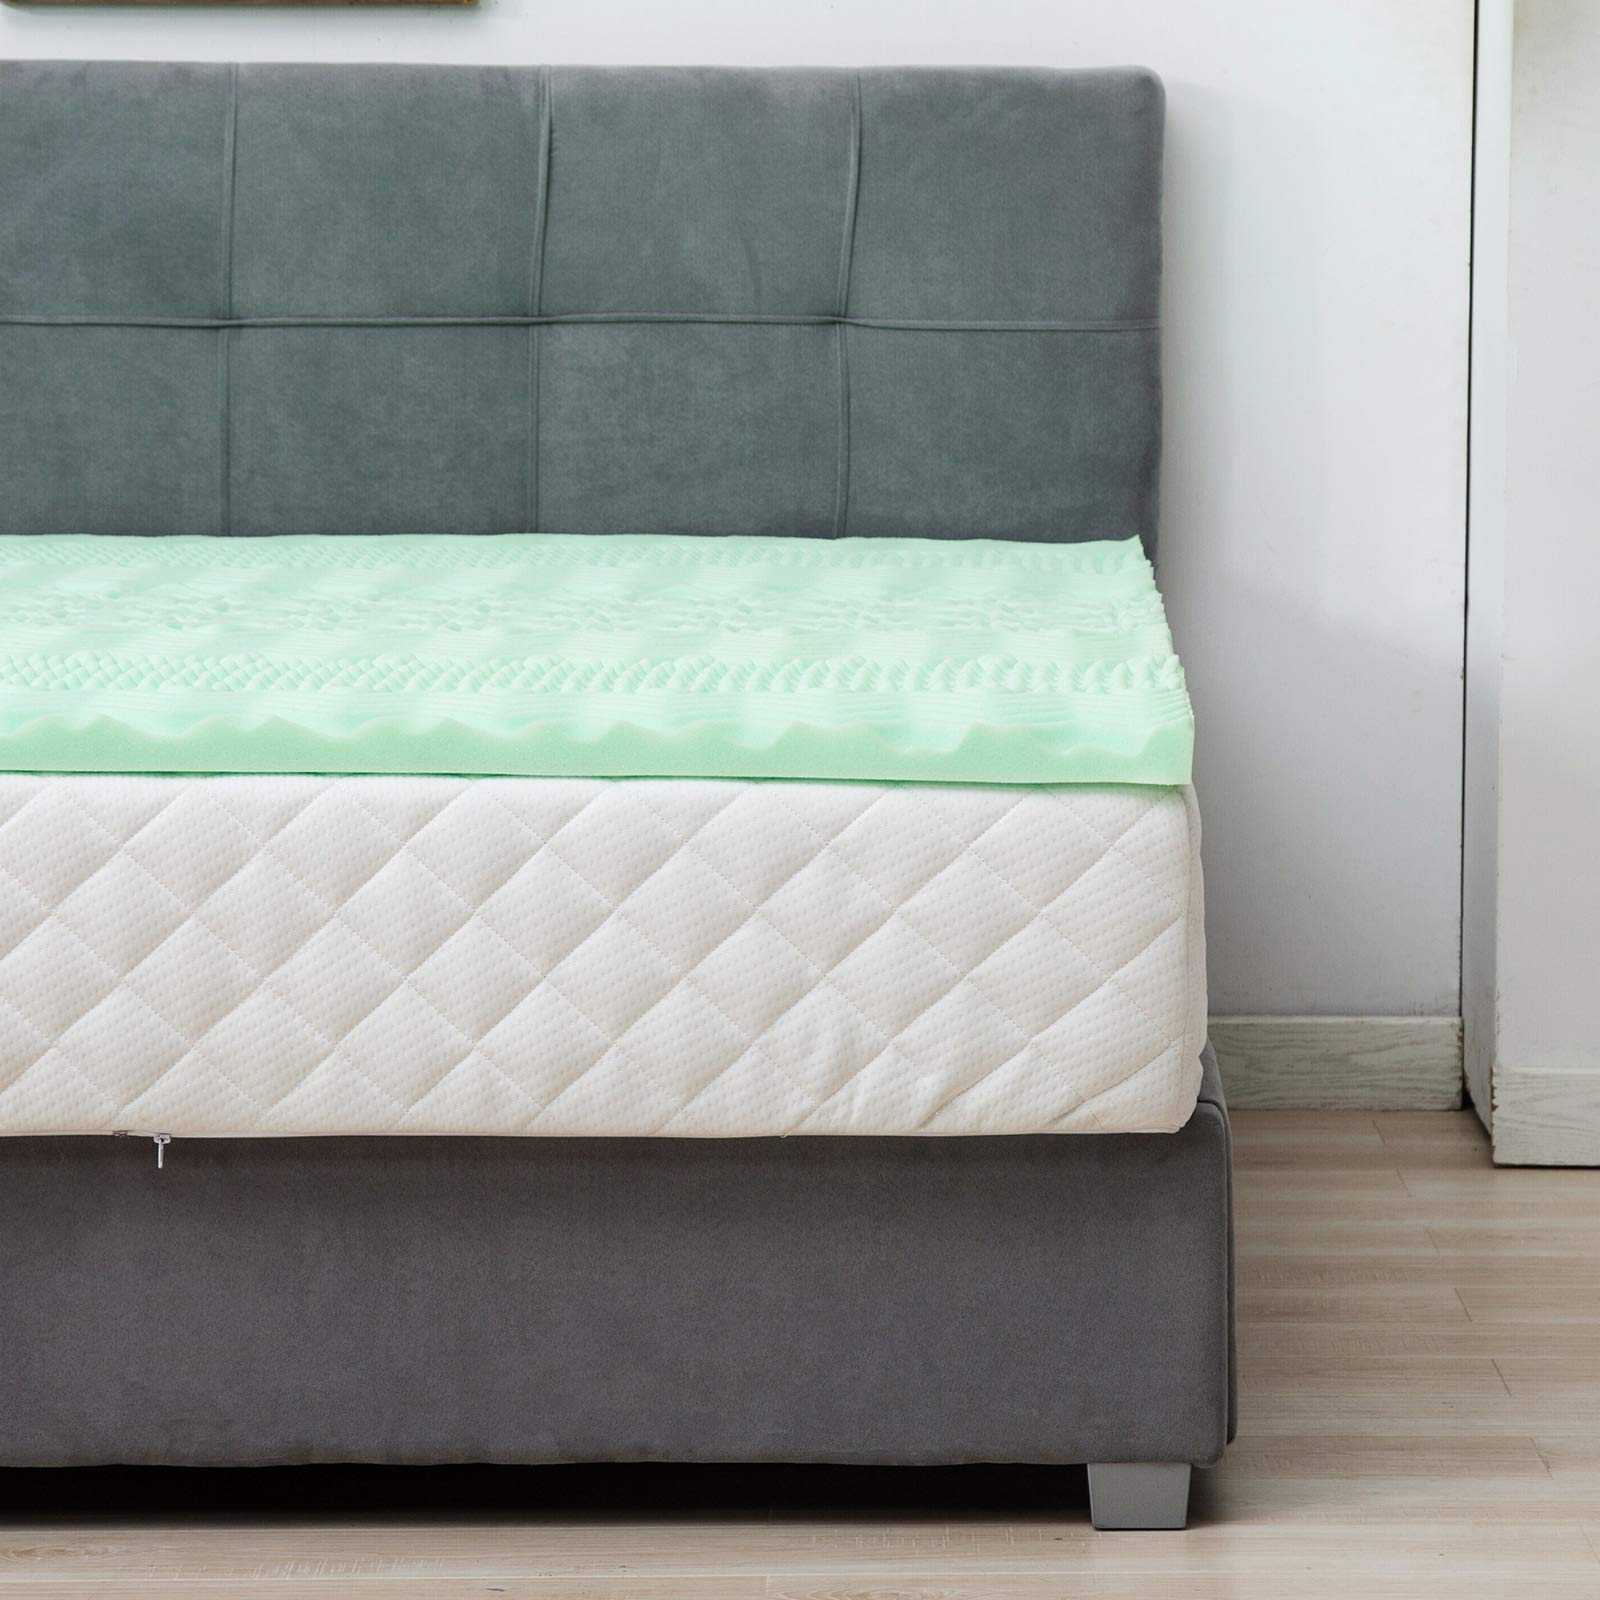 LAGRIMA 2-inch 2'' Mattress Topper, 7-Zone Full Size Memory Foam Mattress Topper, CertiPUR-US Certified, Support for Side, Back, Stomach Sleepers, Green Tea with Pattern